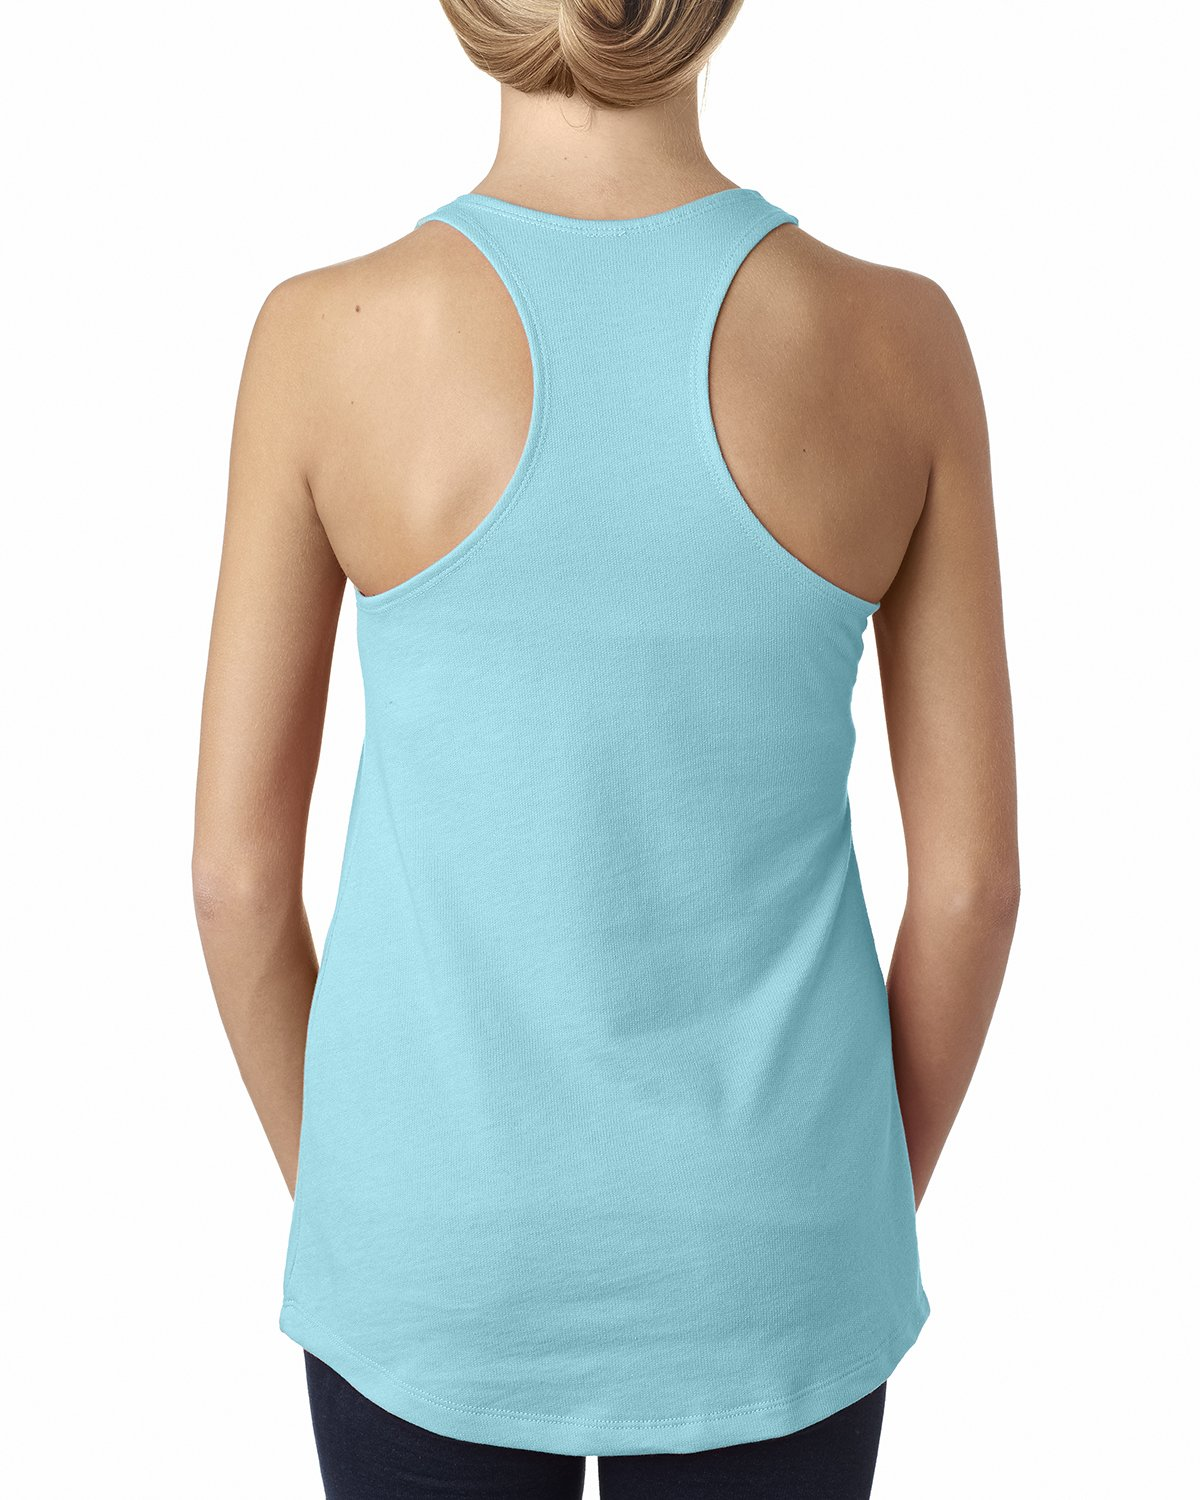 Next Level Womens The Racerback Terry Tank Top 6933-Neon Heather Pink 12 Pack